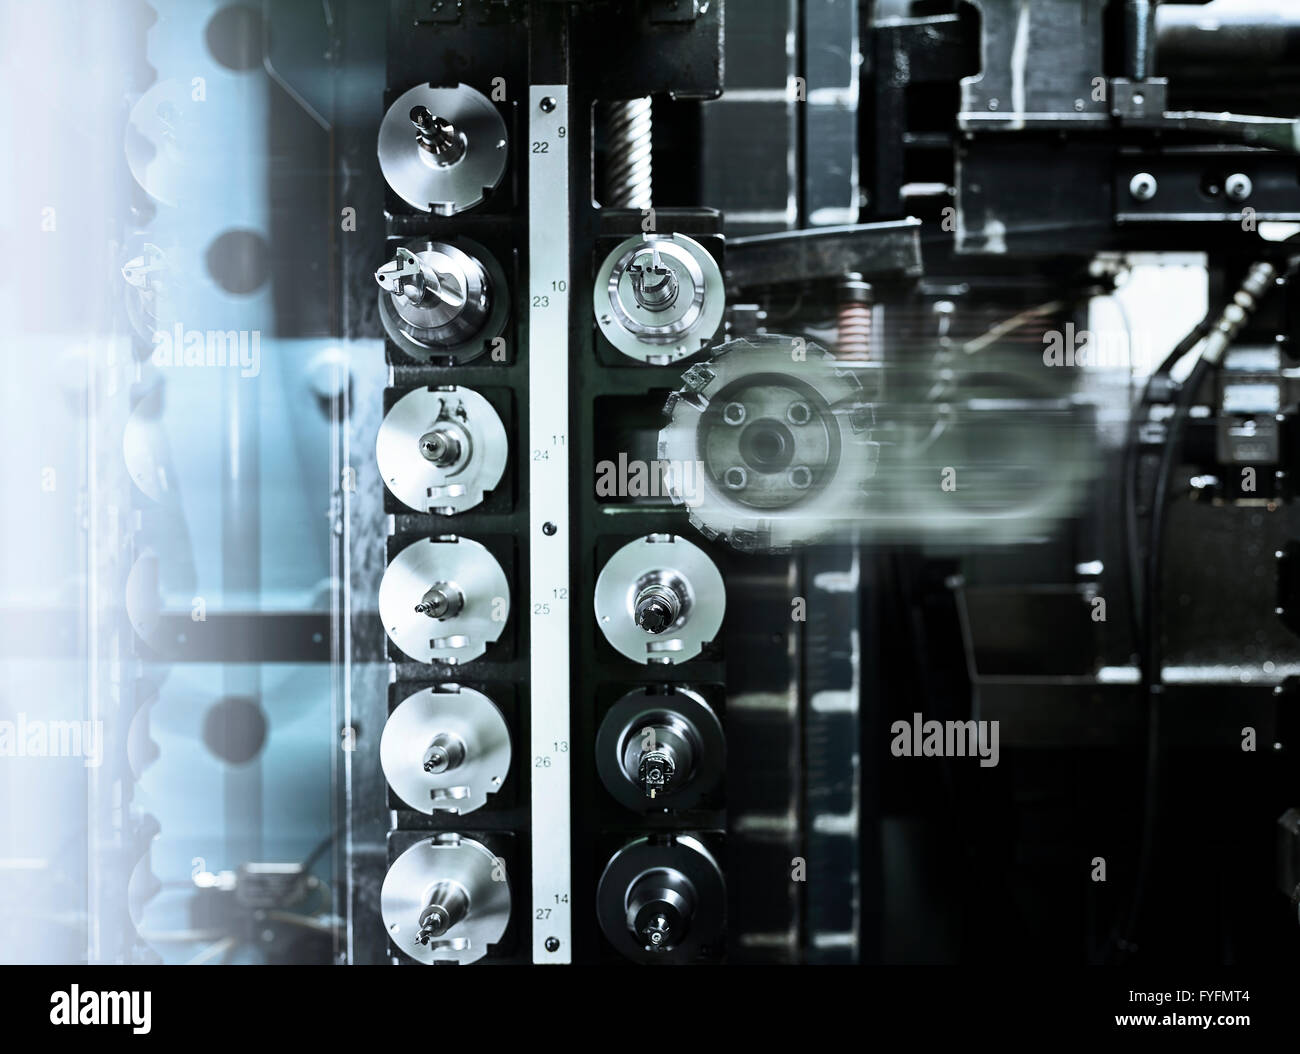 Different tools of a CNC milling machine, tool bit being changed - Stock Image